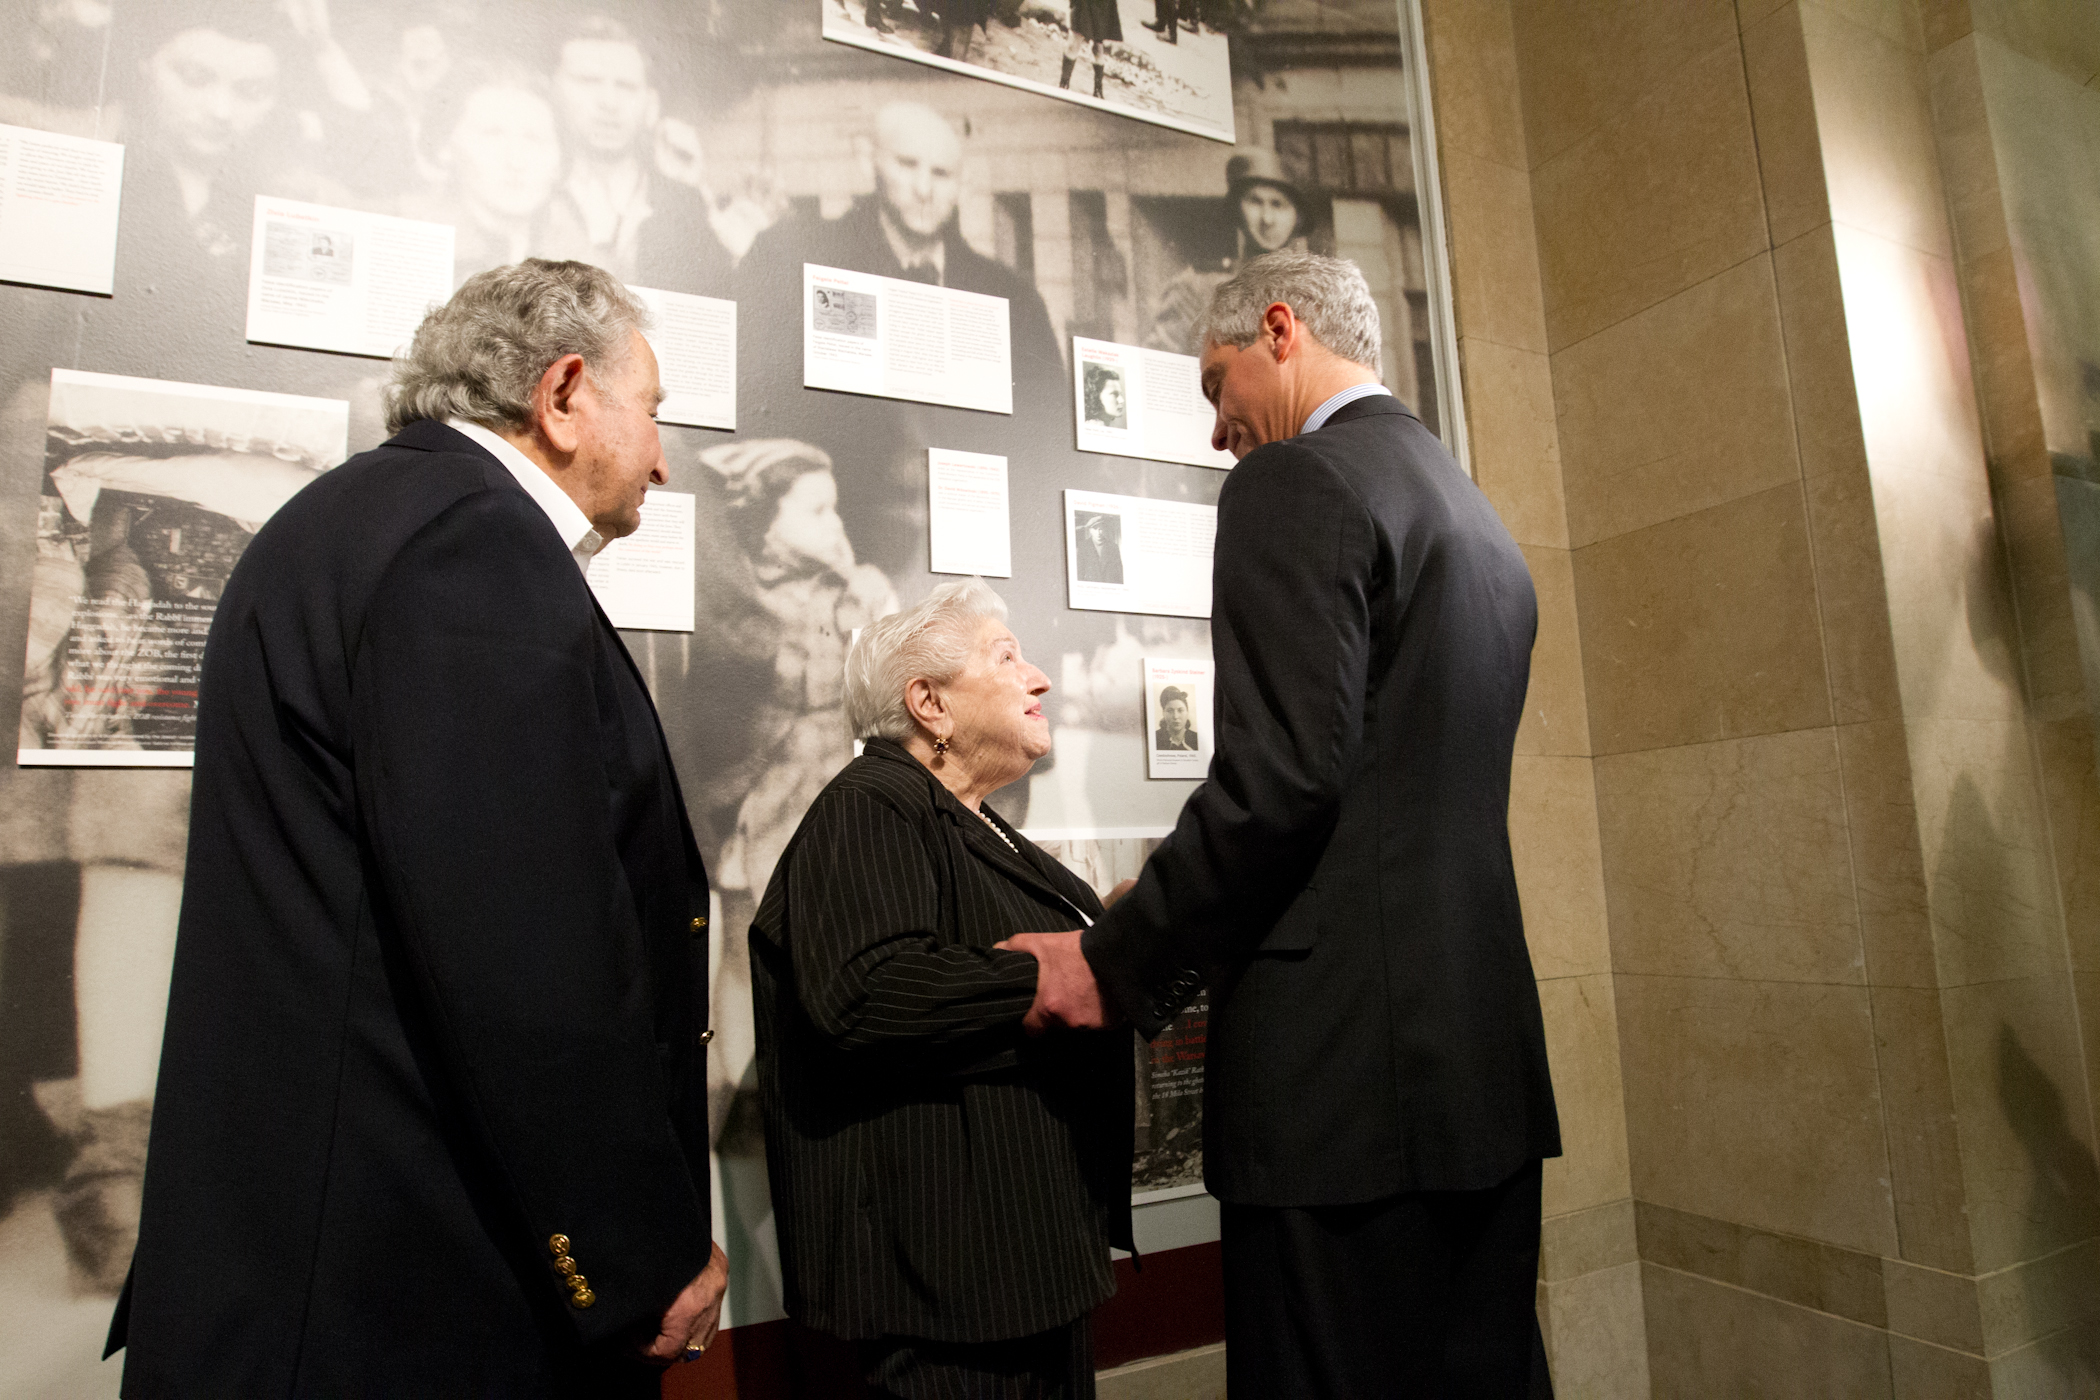 Mayor Emanuel joined by Barbara Steiner and David Figman at the unveiling of the 70th Anniversary of the Warsaw Ghetto Uprising exhibit